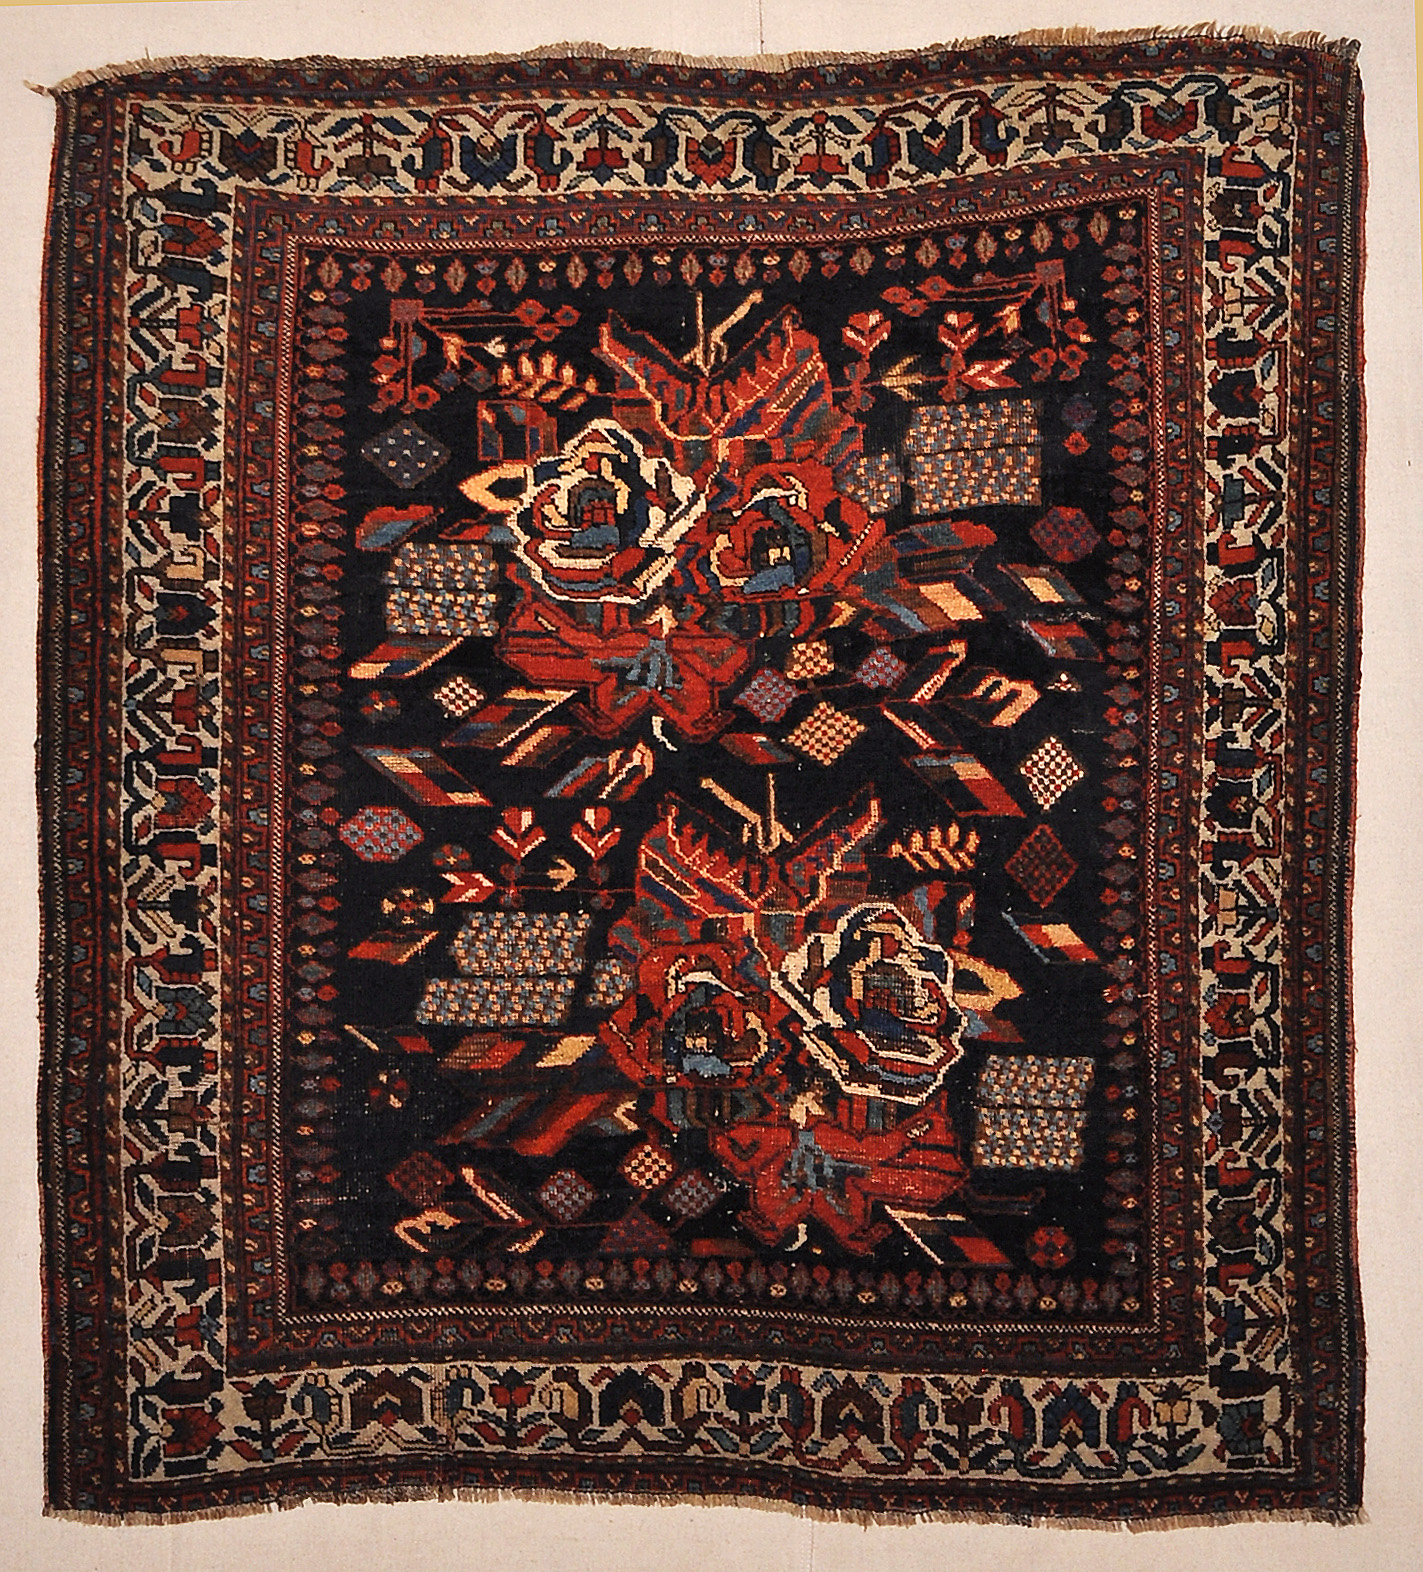 Antique Afshar Persian French Flowers Rug Authentic Genuine Intricate Woven Carpet Art Santa Barbara Design Center Rugs and More